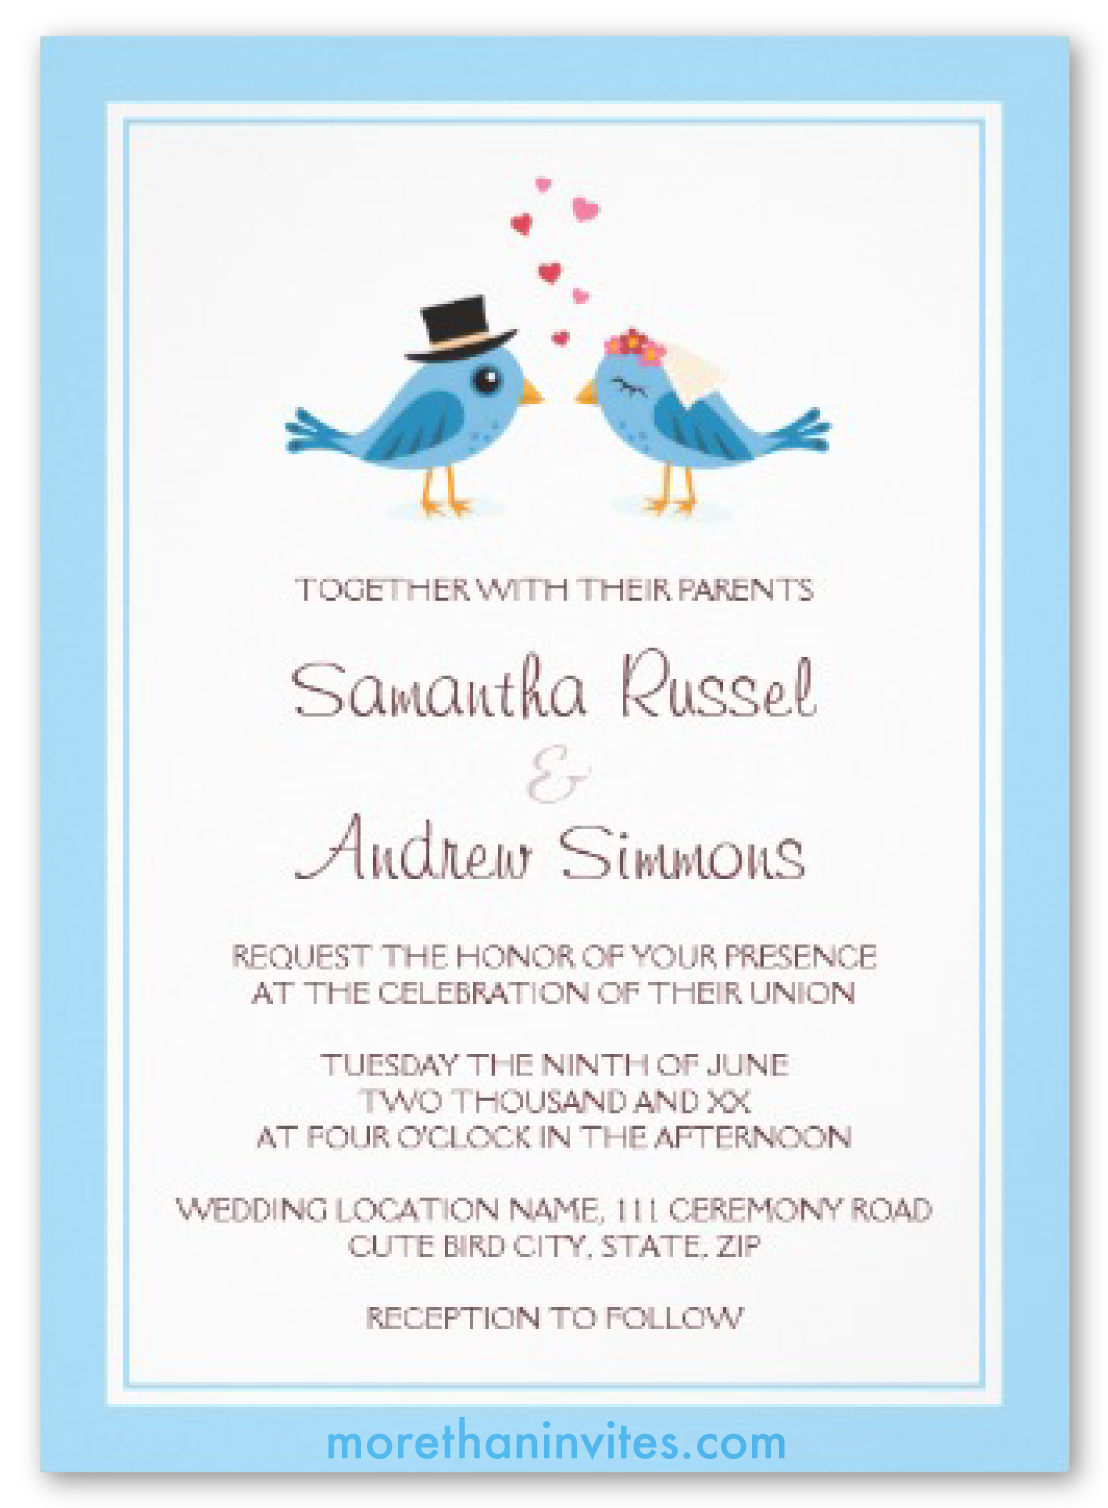 cute blue bird bride and groom wedding invitation